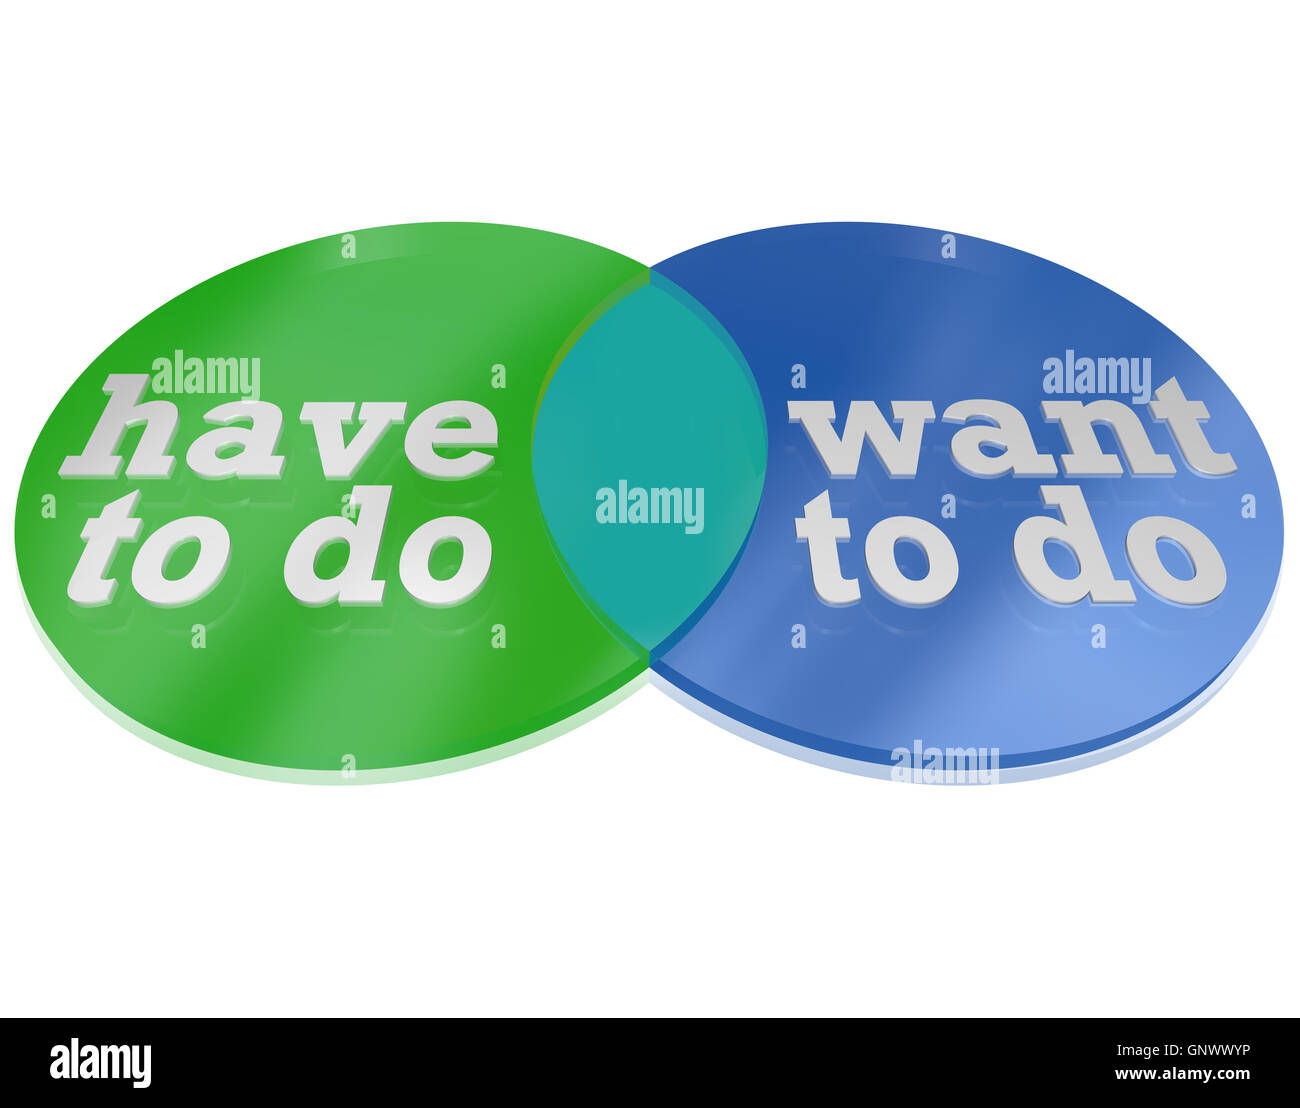 What Do You Have Vs Need to Do Venn Diagram Decision - Stock Image